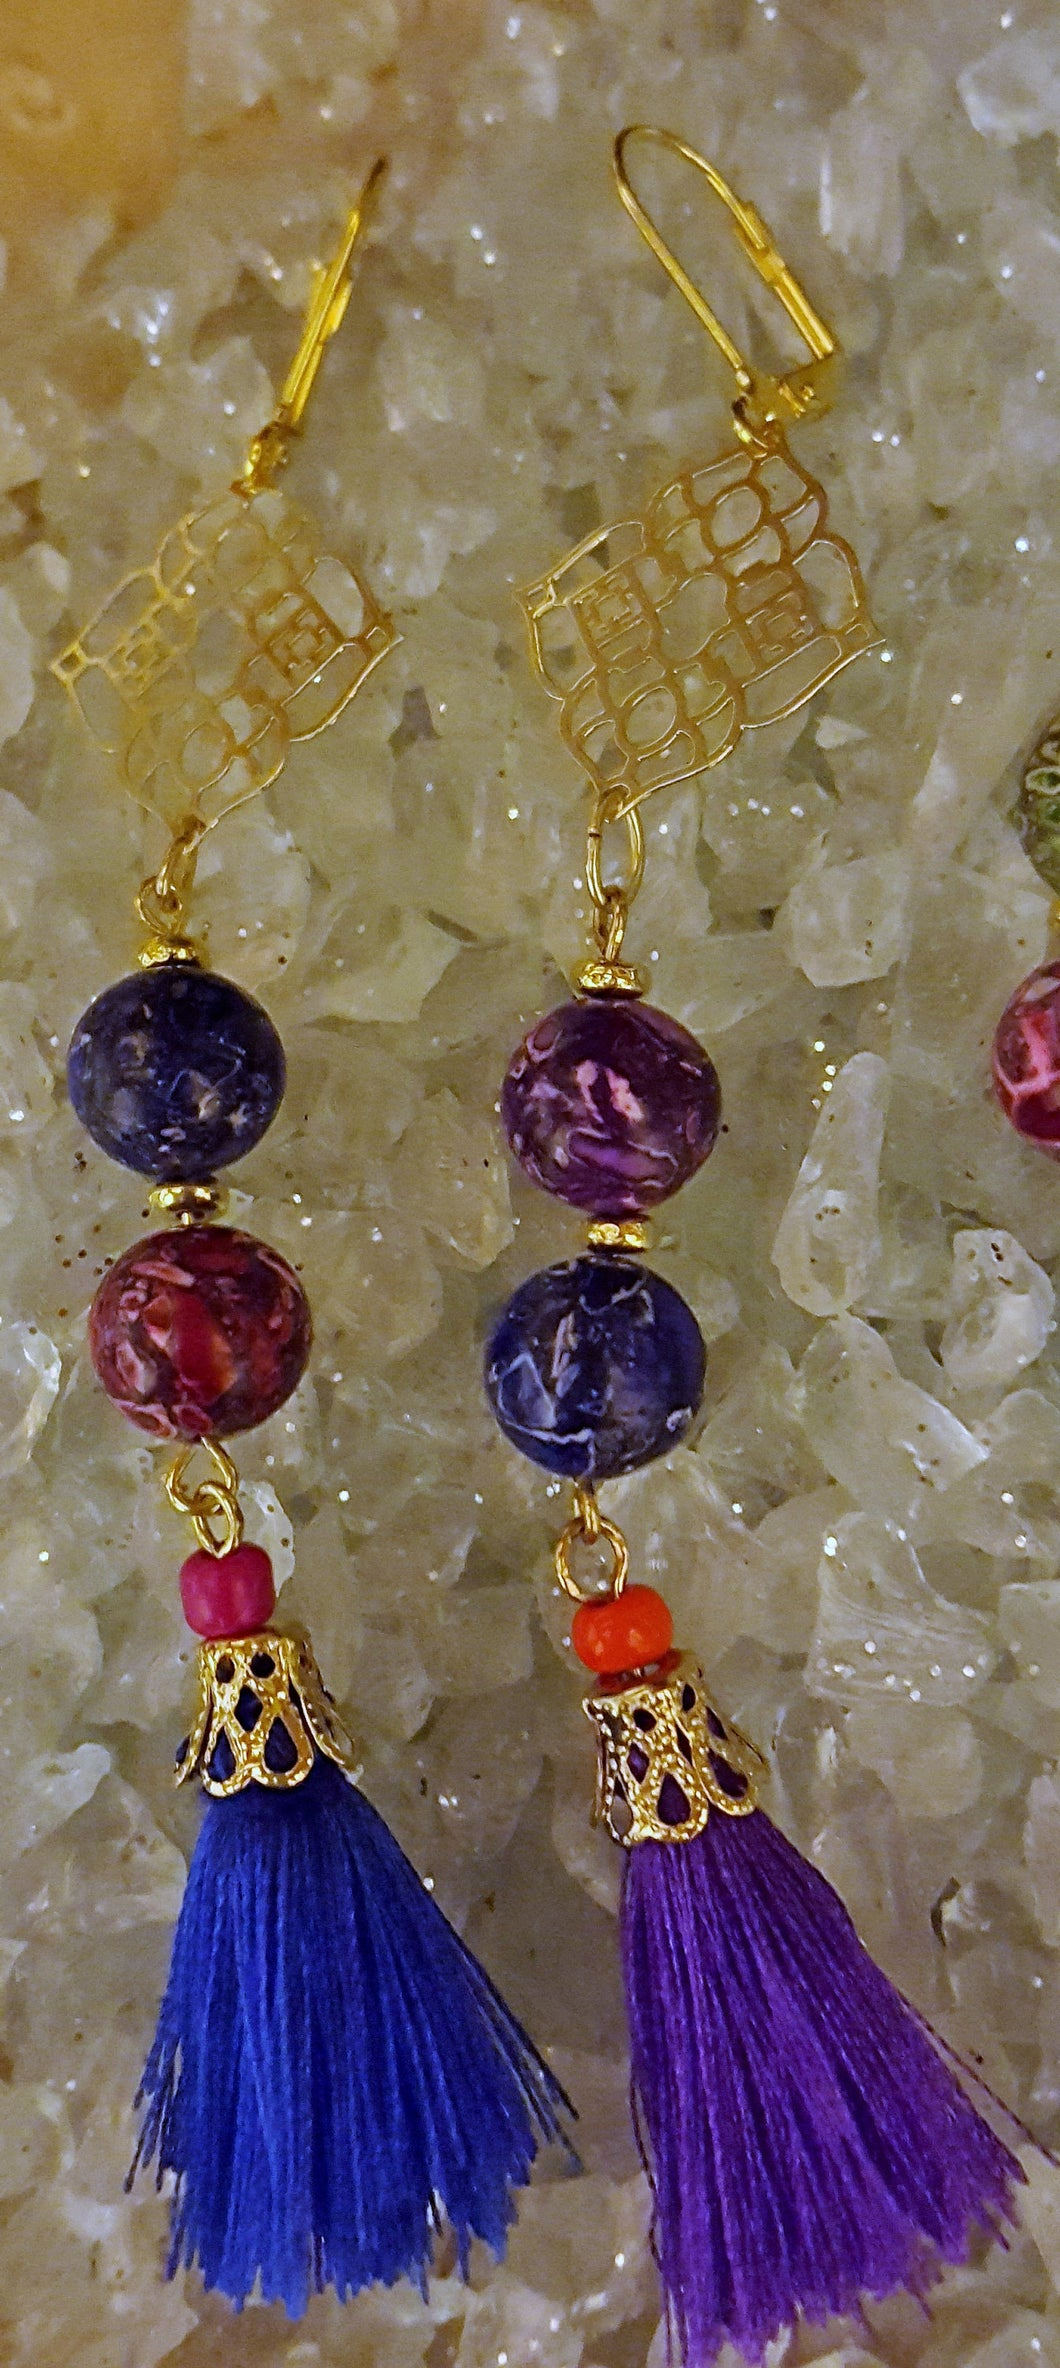 Elegant colored glass beads with gold findings and colorful tassels